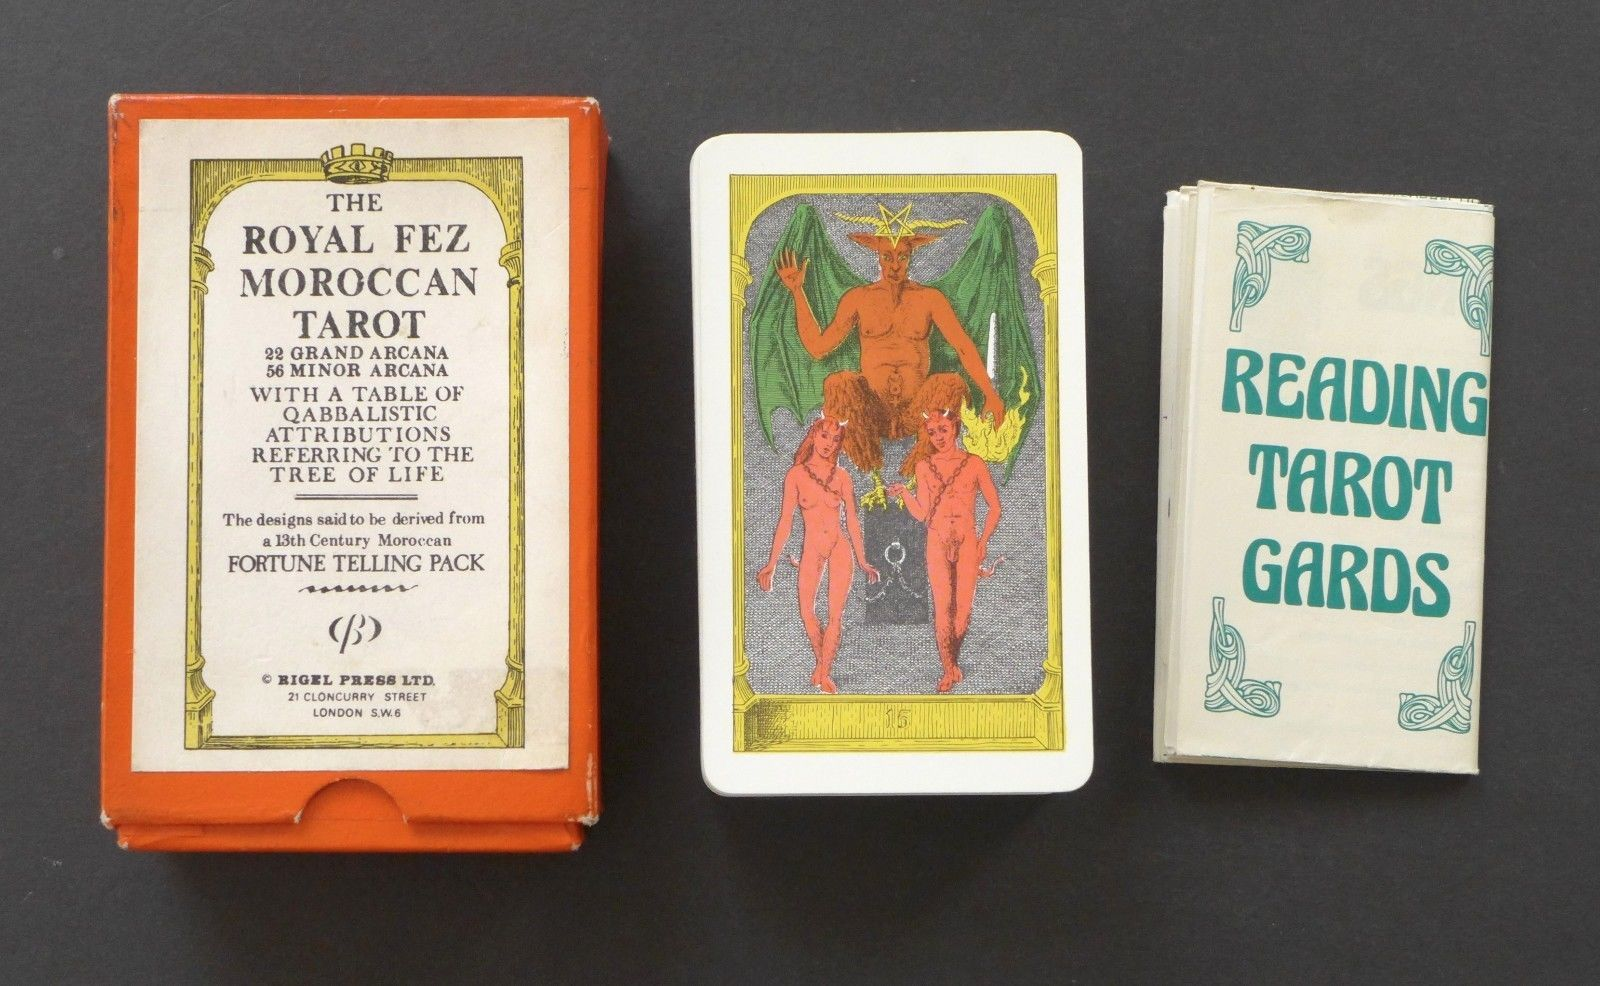 Vintage Morrocan Royal Fez Tarot Cards Deck Rider Waite Clone 1975 Rigel Press | eBay